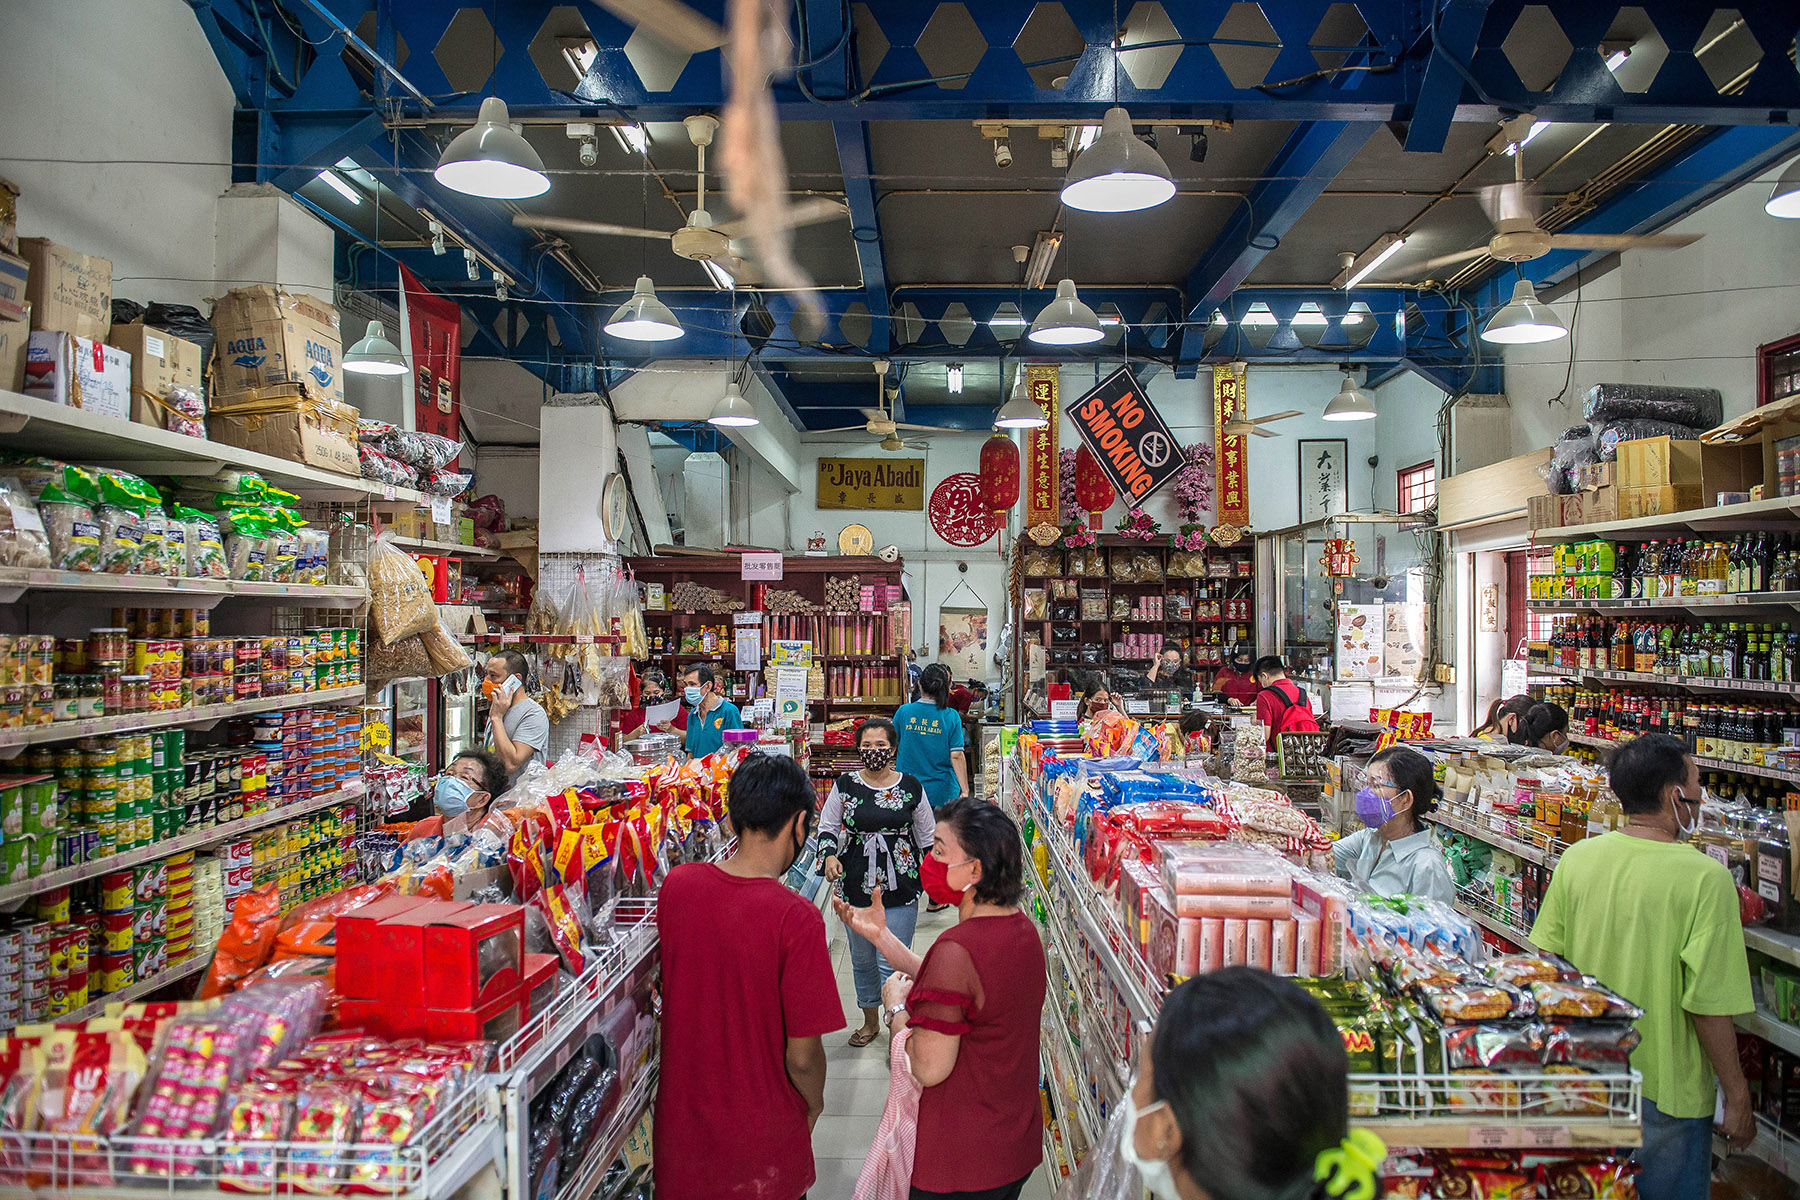 A Chinese grocery store with customers